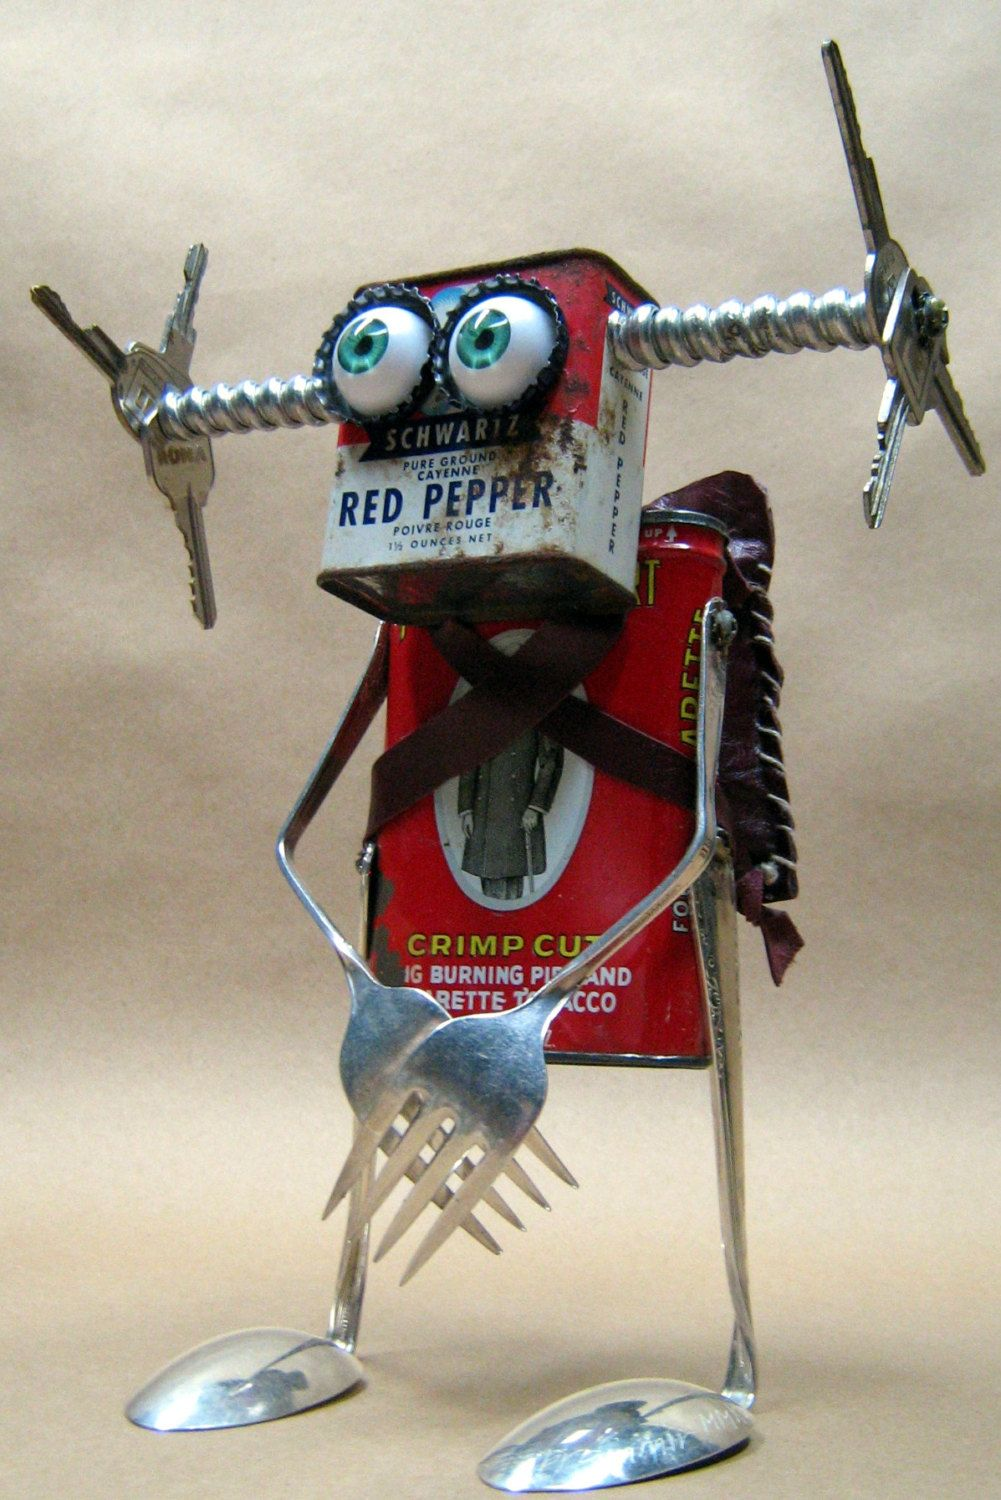 Cole junk bot recycled materials handmade Unique scrap art found object office decor upcycled repurposed,robot art sculpture